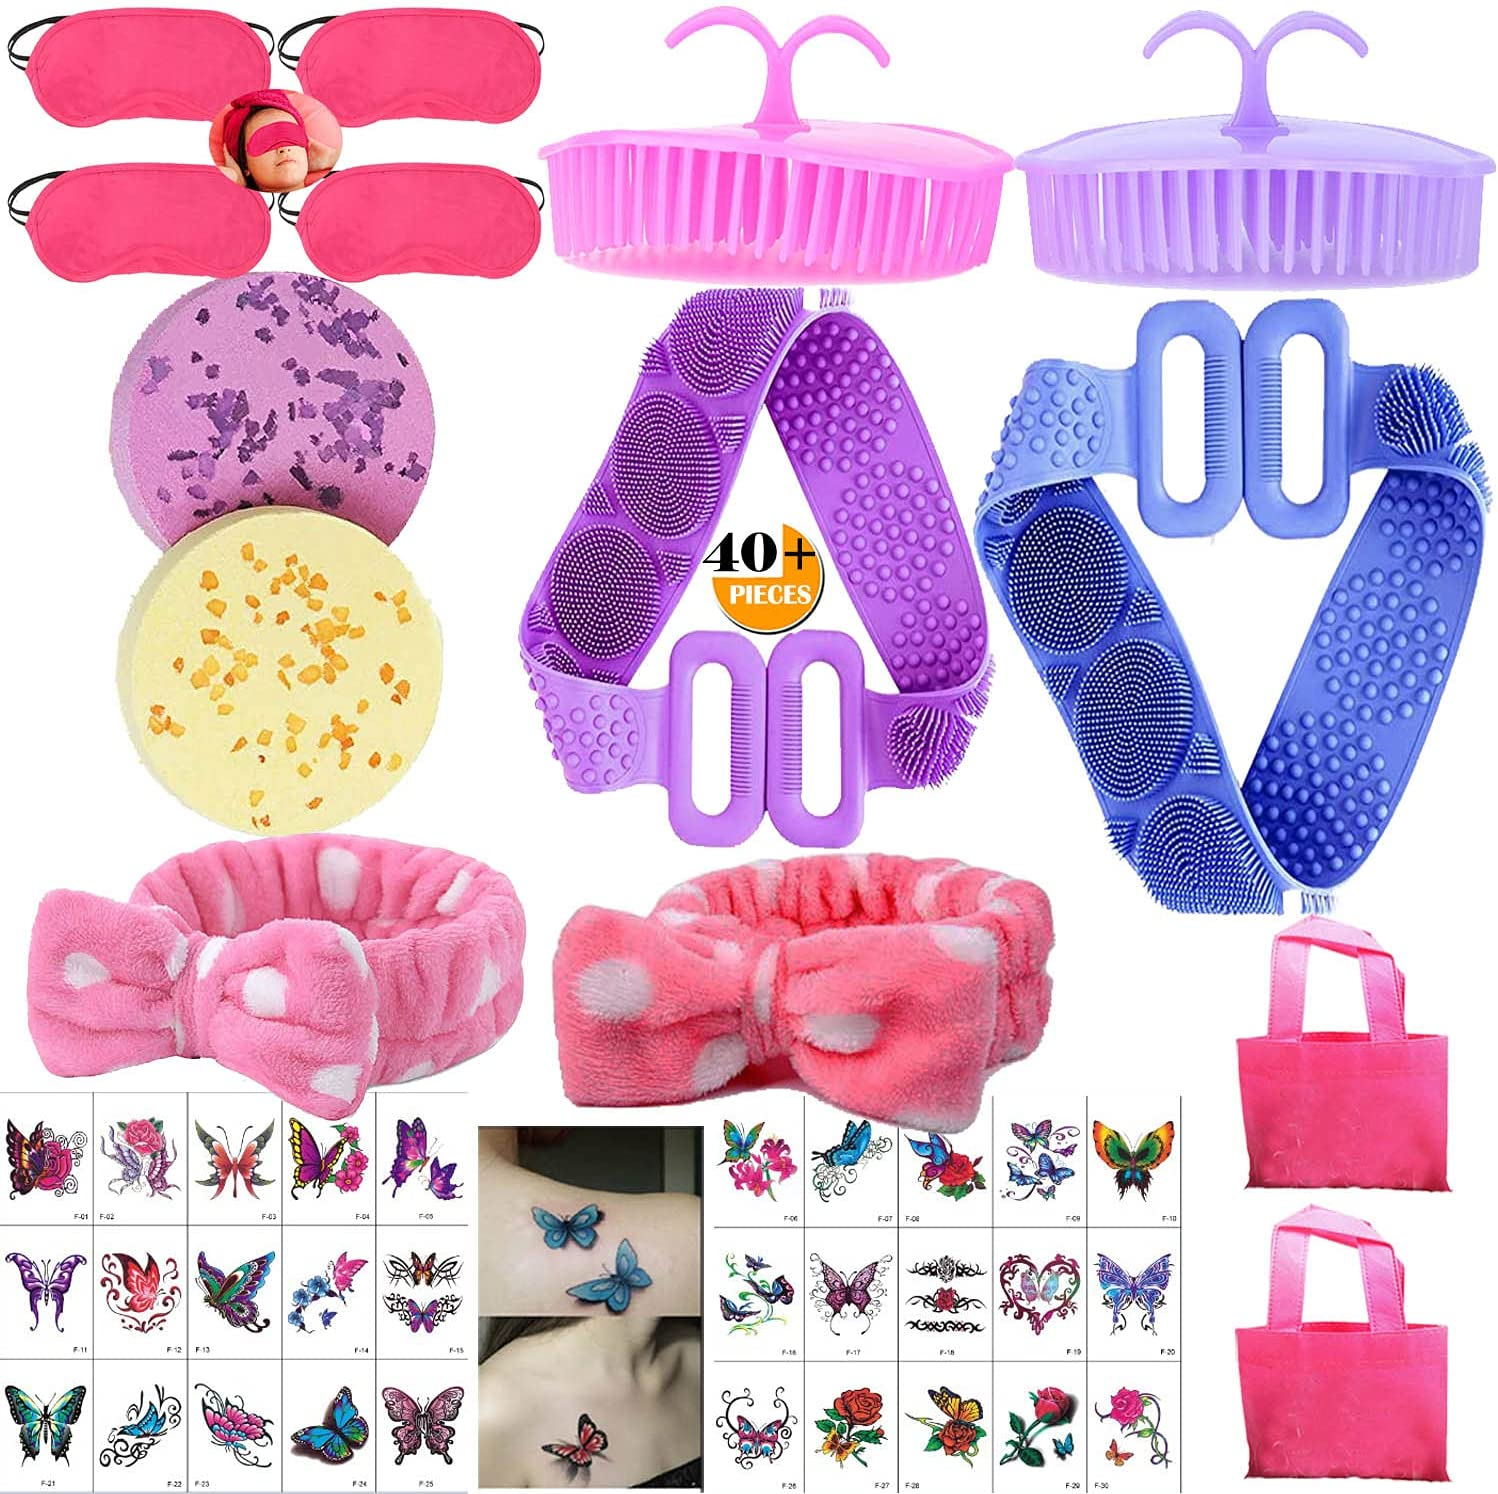 TABGIME 40+PCS Girls Online limited product Bath Great interest Bathing Sets for Home Relaxation Spa